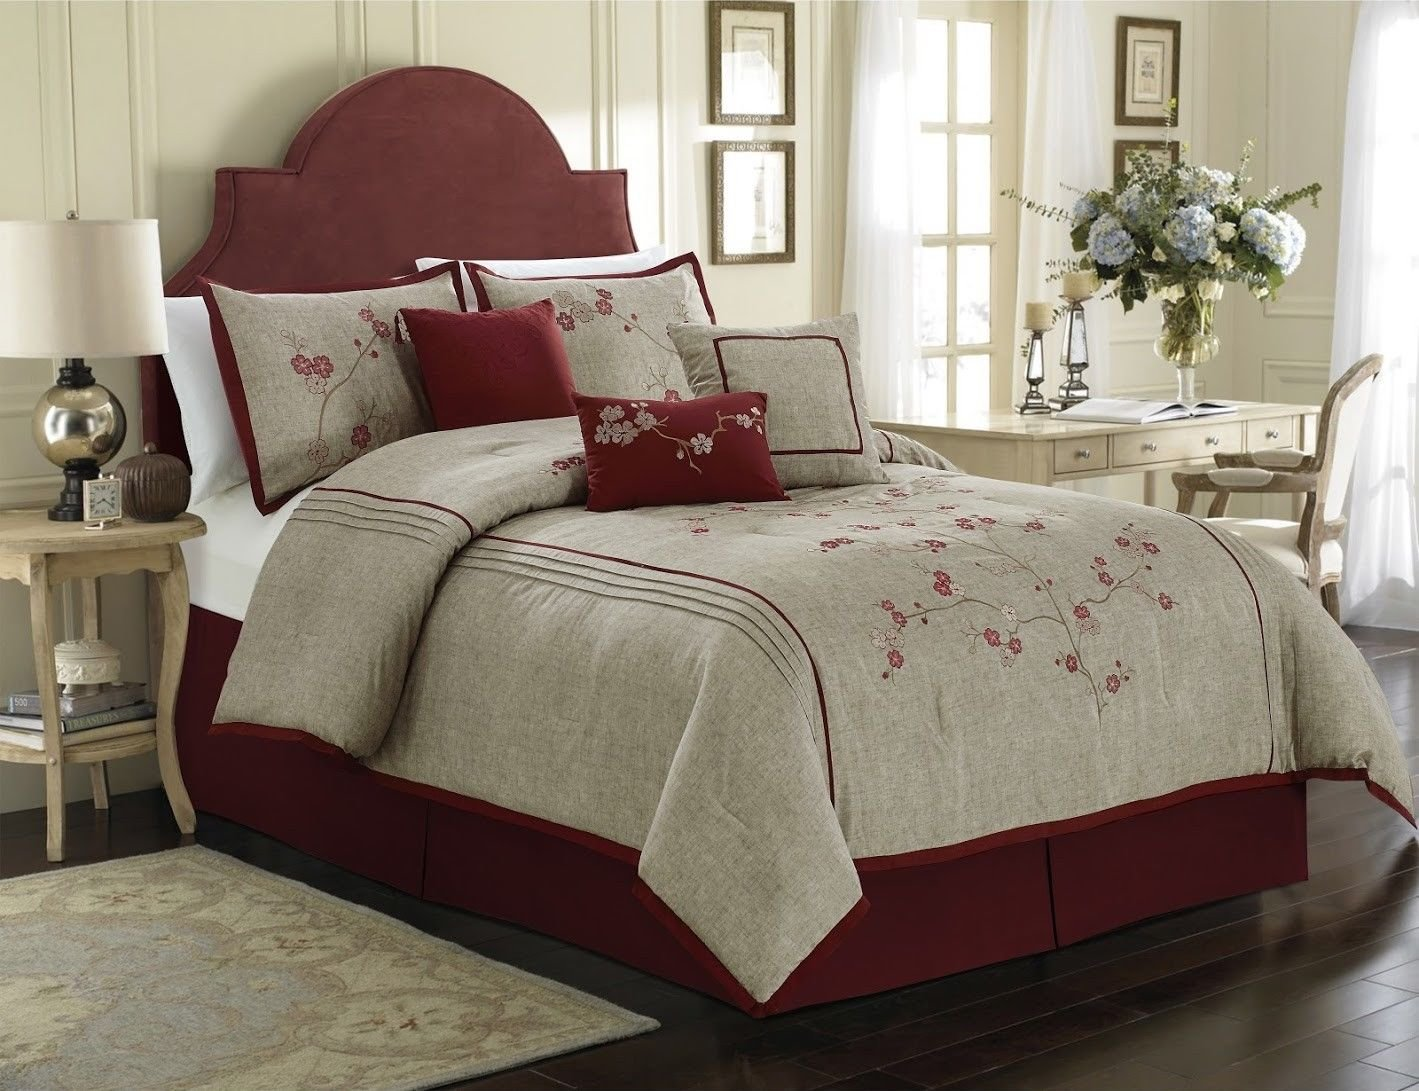 7 Pc Miki Luxury Red Cherry Blossoms Floral Embroidery Bedding Comforter Set